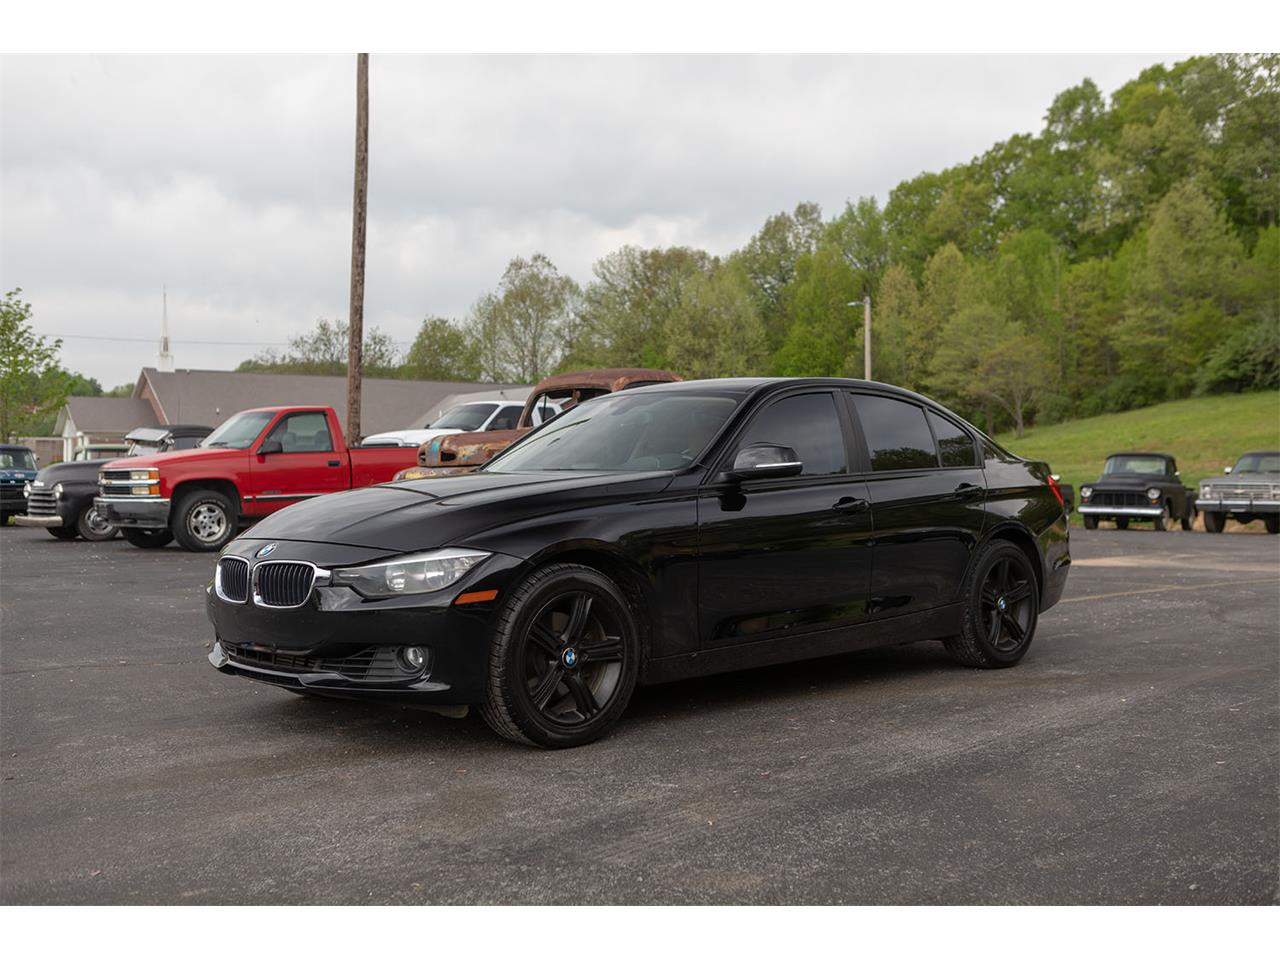 2012 Bmw 328i For Sale >> For Sale 2012 Bmw 328i In Dongola Illinois